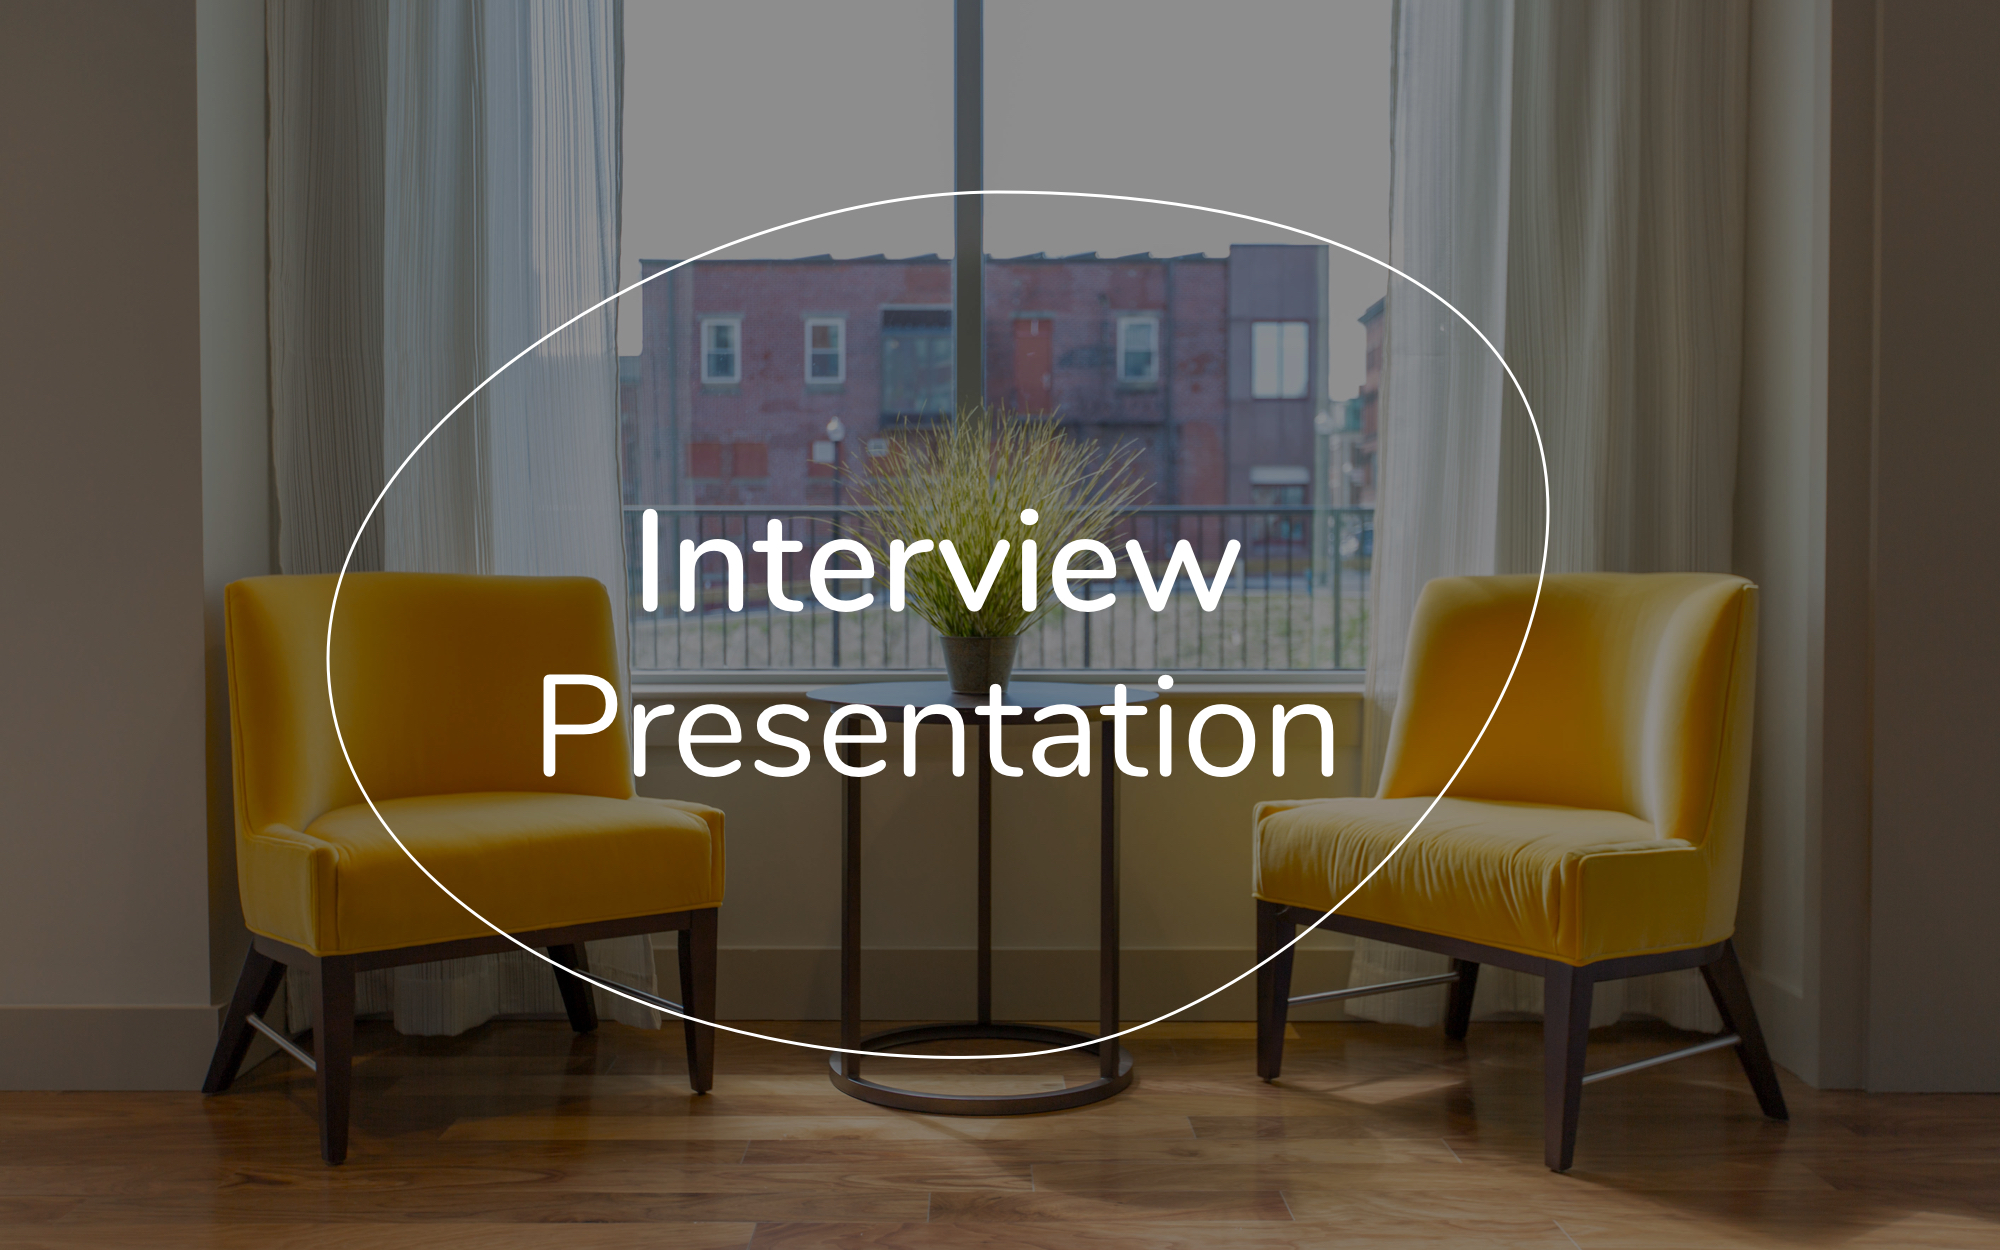 Interview Presentation Template: How to do a Job Interview